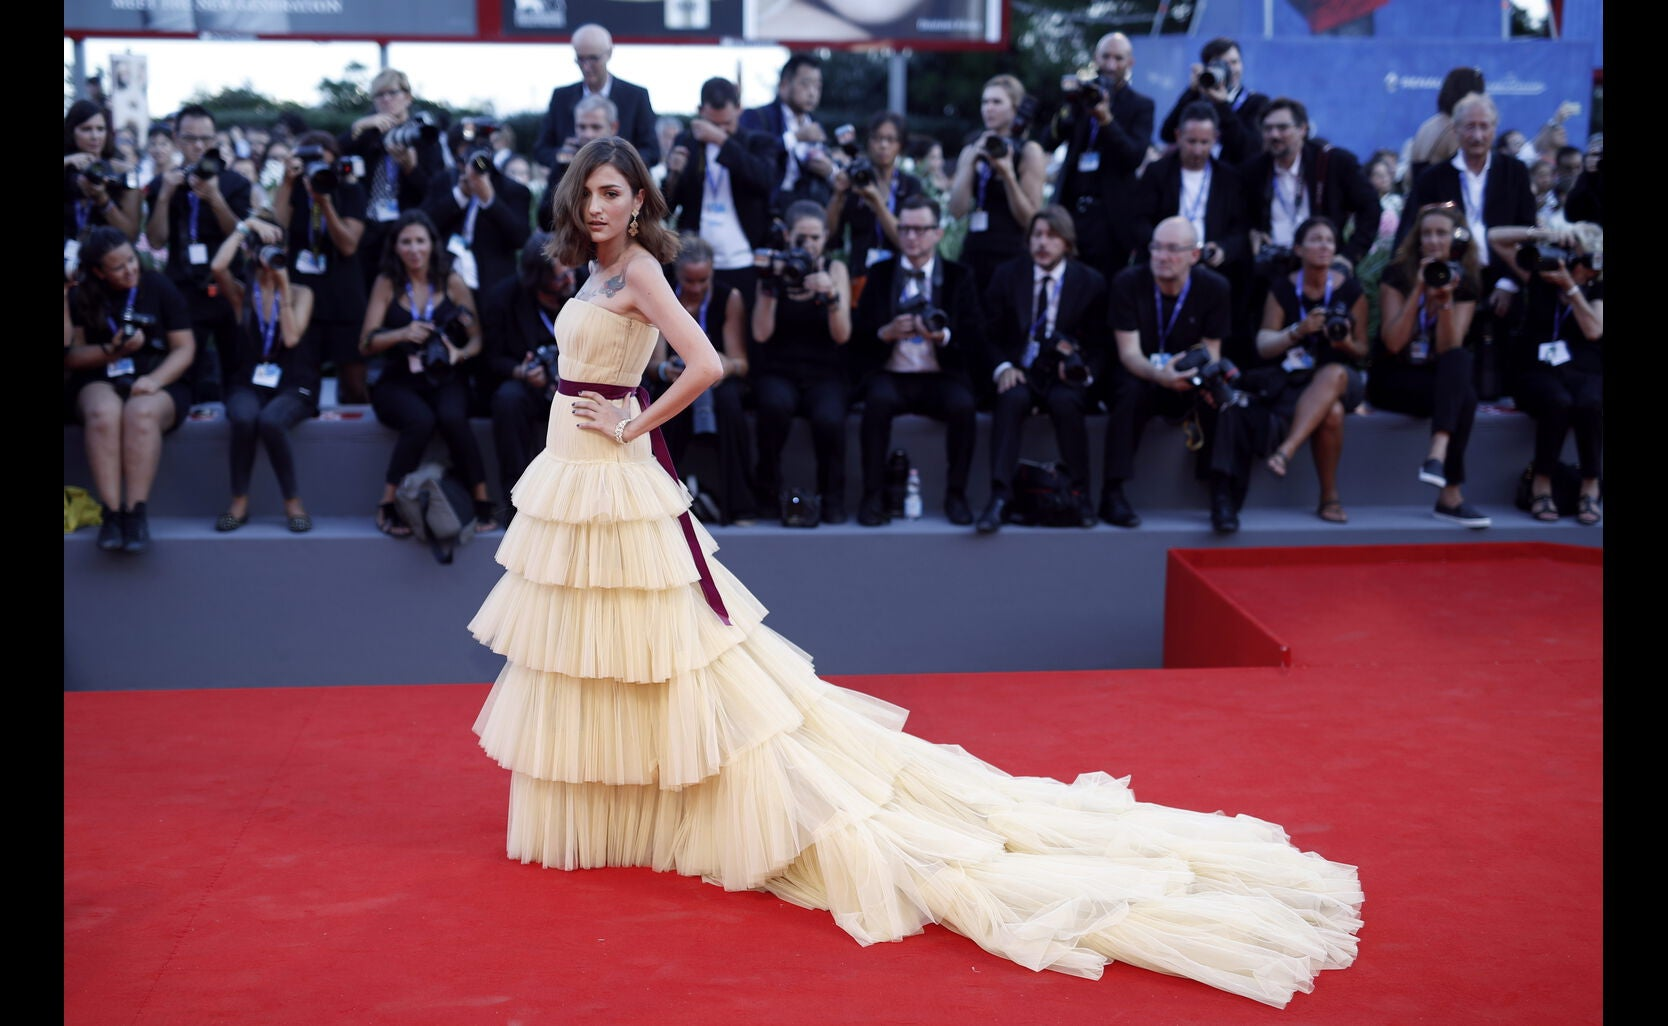 Eleonora Carisi at the premiere of The Light Between Oceans in Venice, Italy